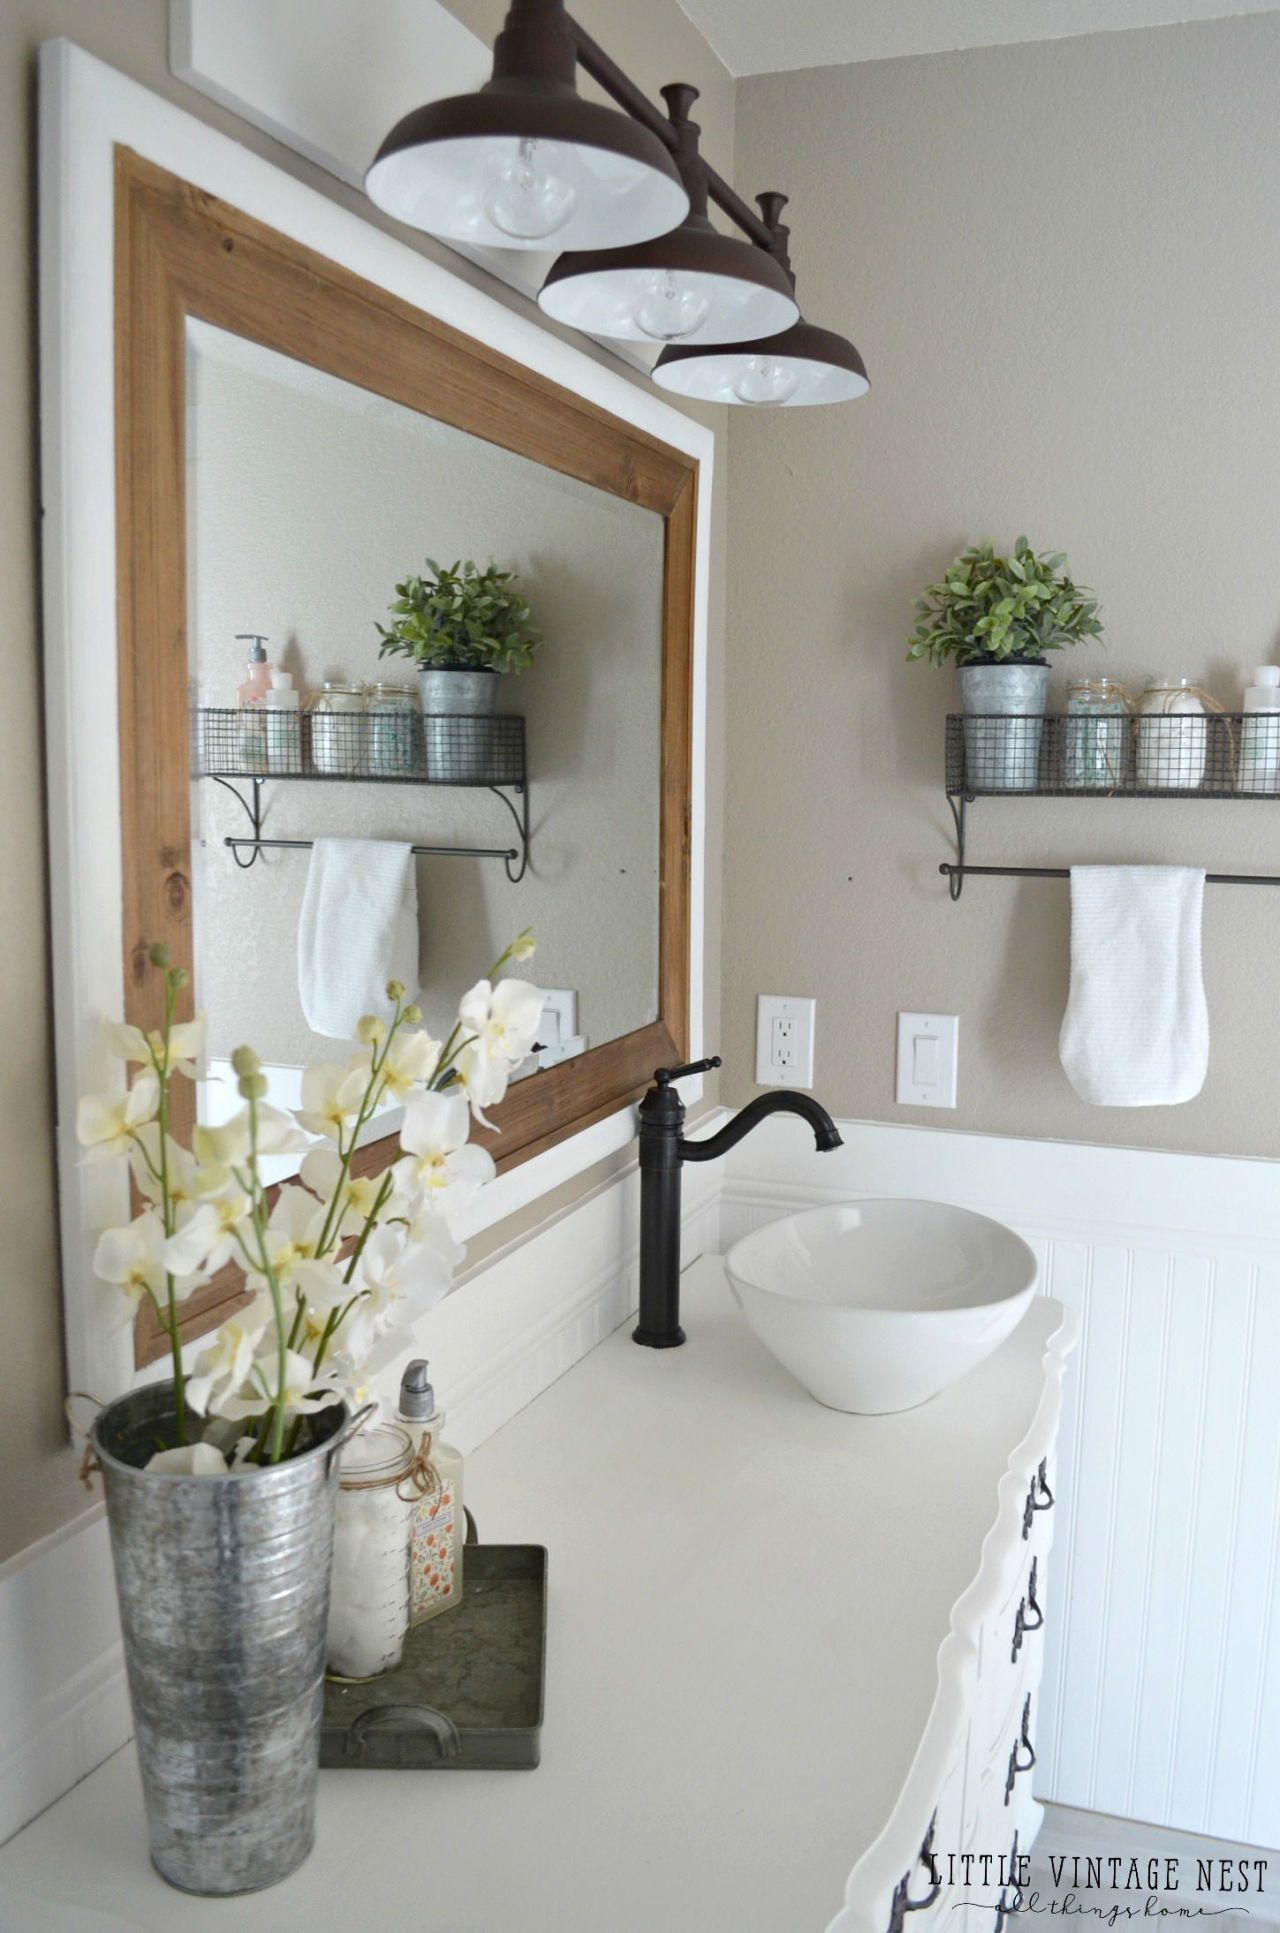 5 master bedroom house   Brilliant Design Ideas to Steal From This Farmhouse Bathroom